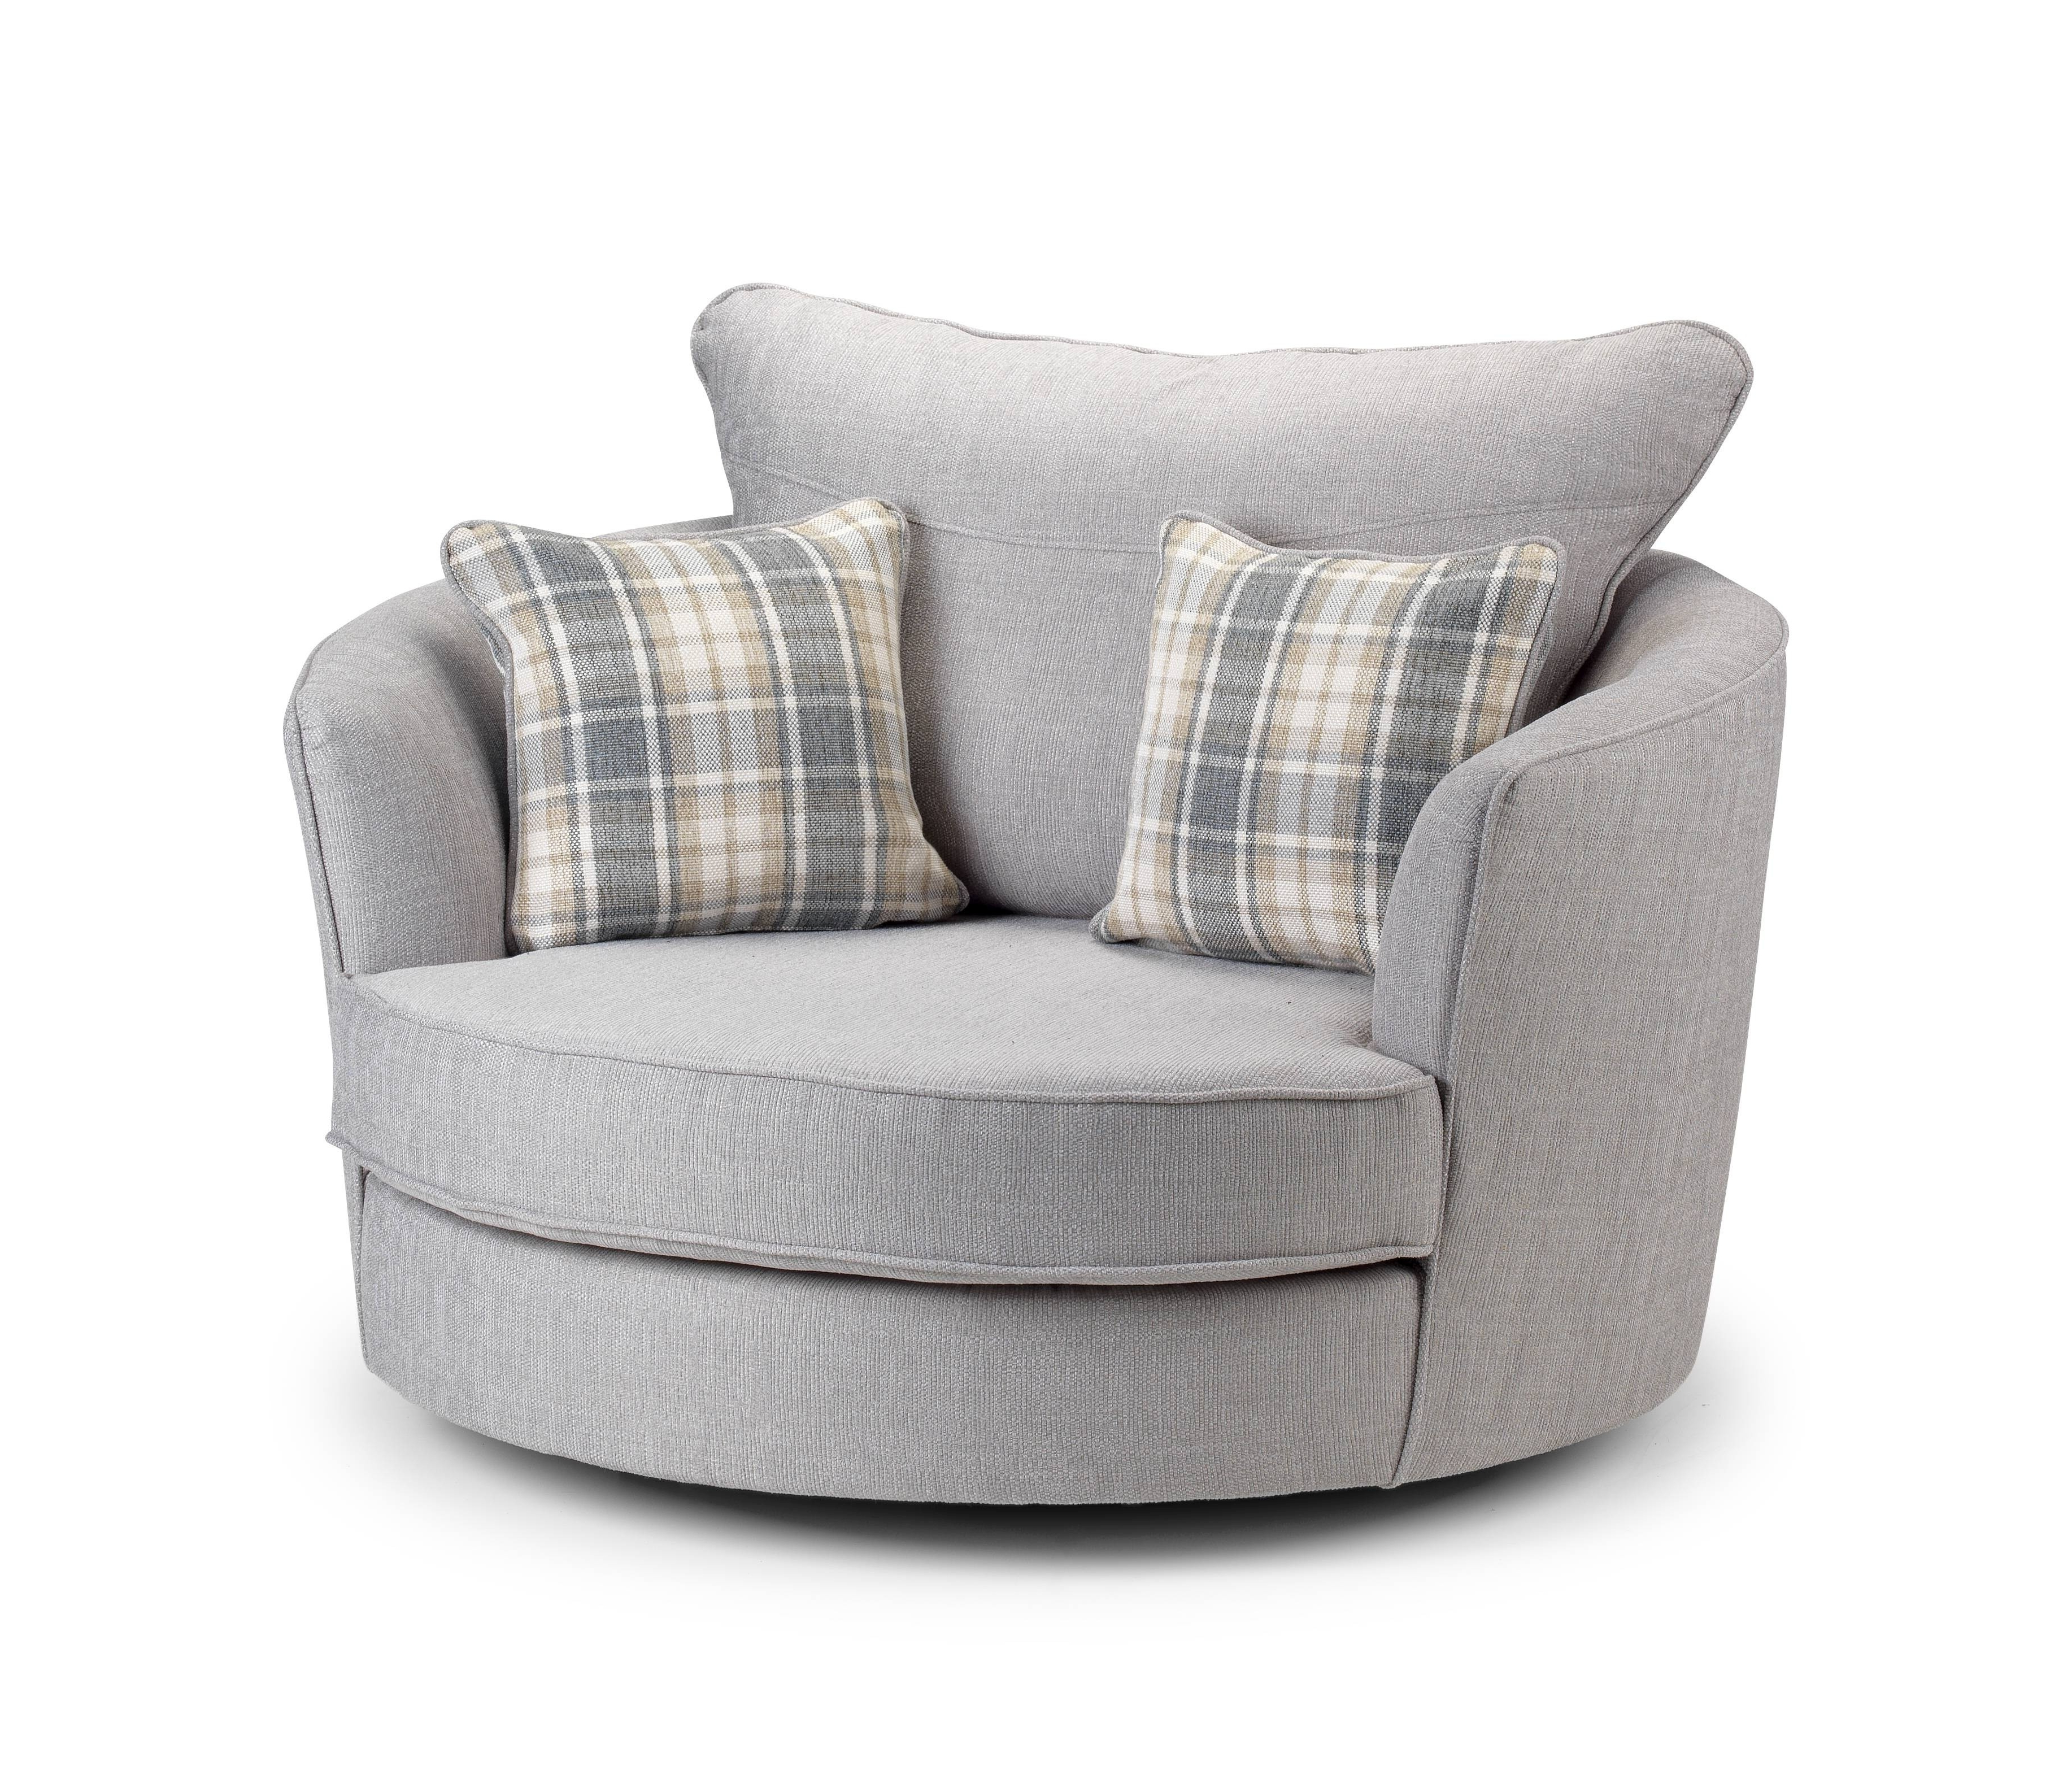 New Round Sofa Chair Image – Modern Sofa Design Ideas (View 2 of 20)